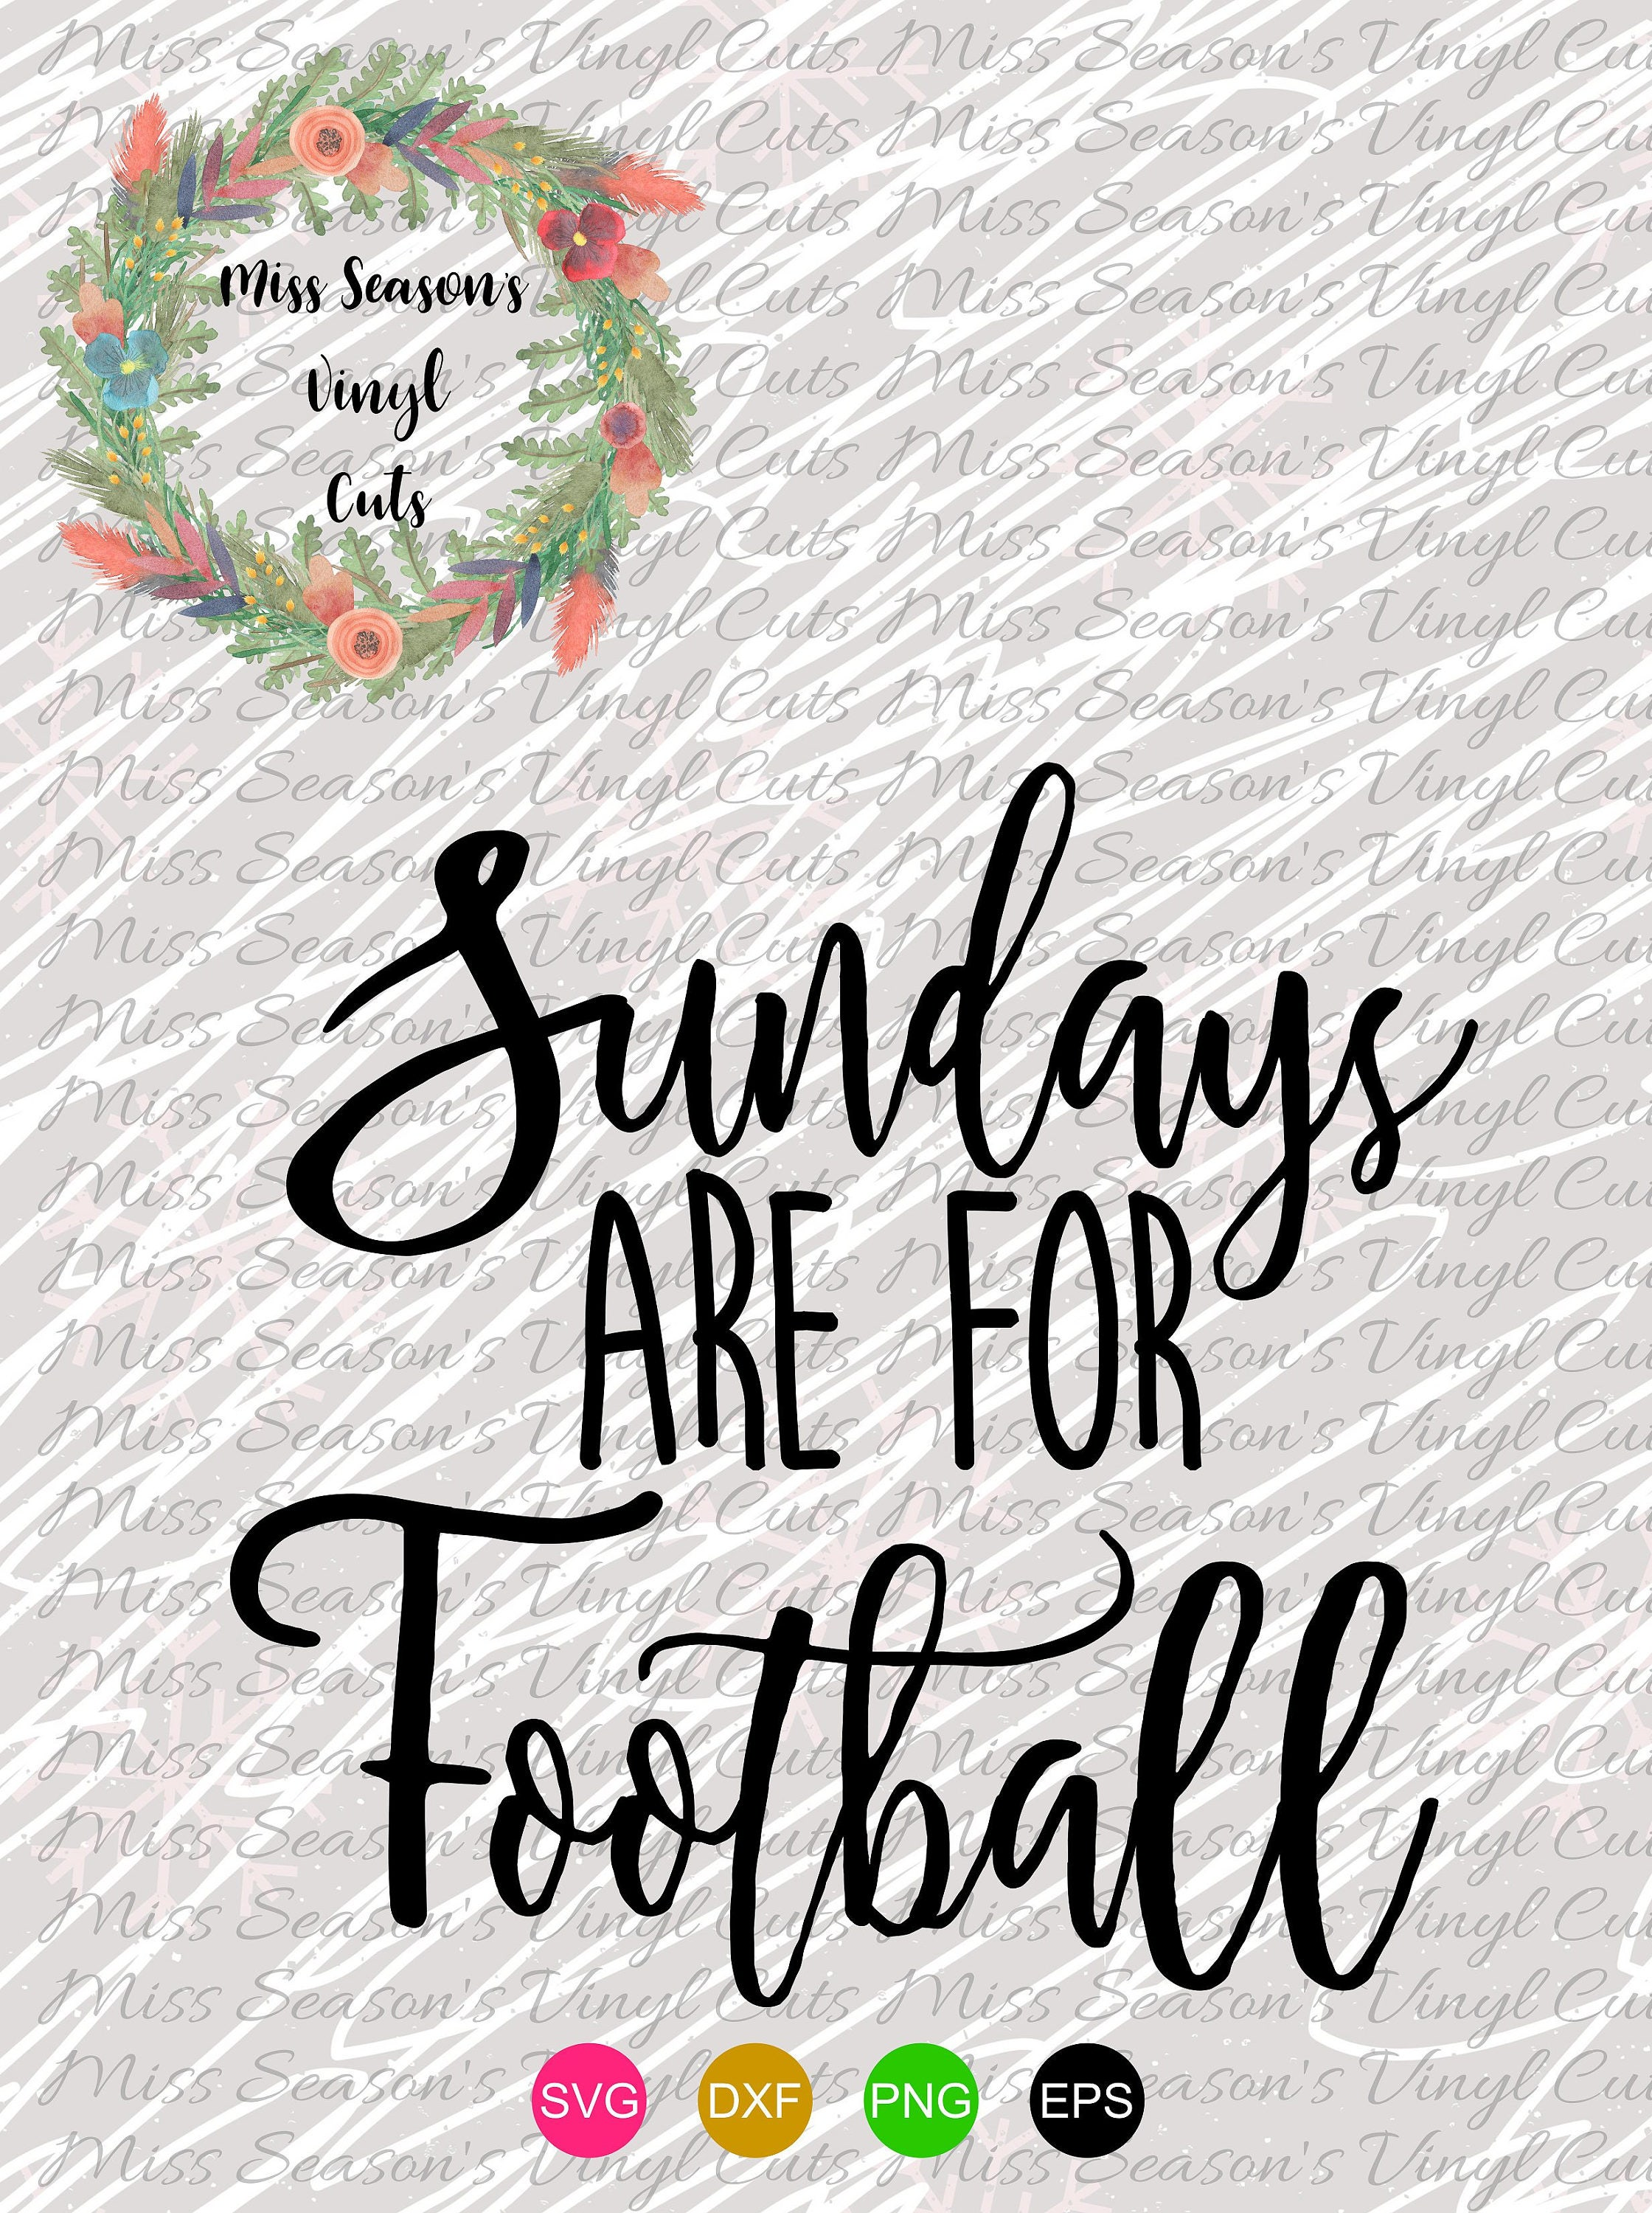 Sundays are for Football Svg Dxf, Eps, Png| Fall Silhouette or Cricut Cutting File | Personal & Commercial Use| Fall Stencil